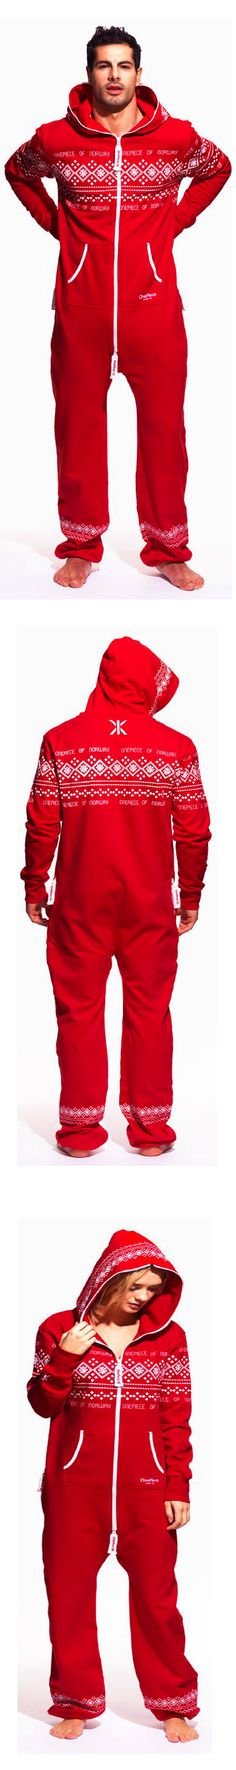 The Norwegian Onepiece worn by celebrities may be the perfect Christmas morning pajamas. Buy One, Get One 50% Off Sale is On!  I can see the fashionista couple sporting a pair of these.  Cute pictures!!